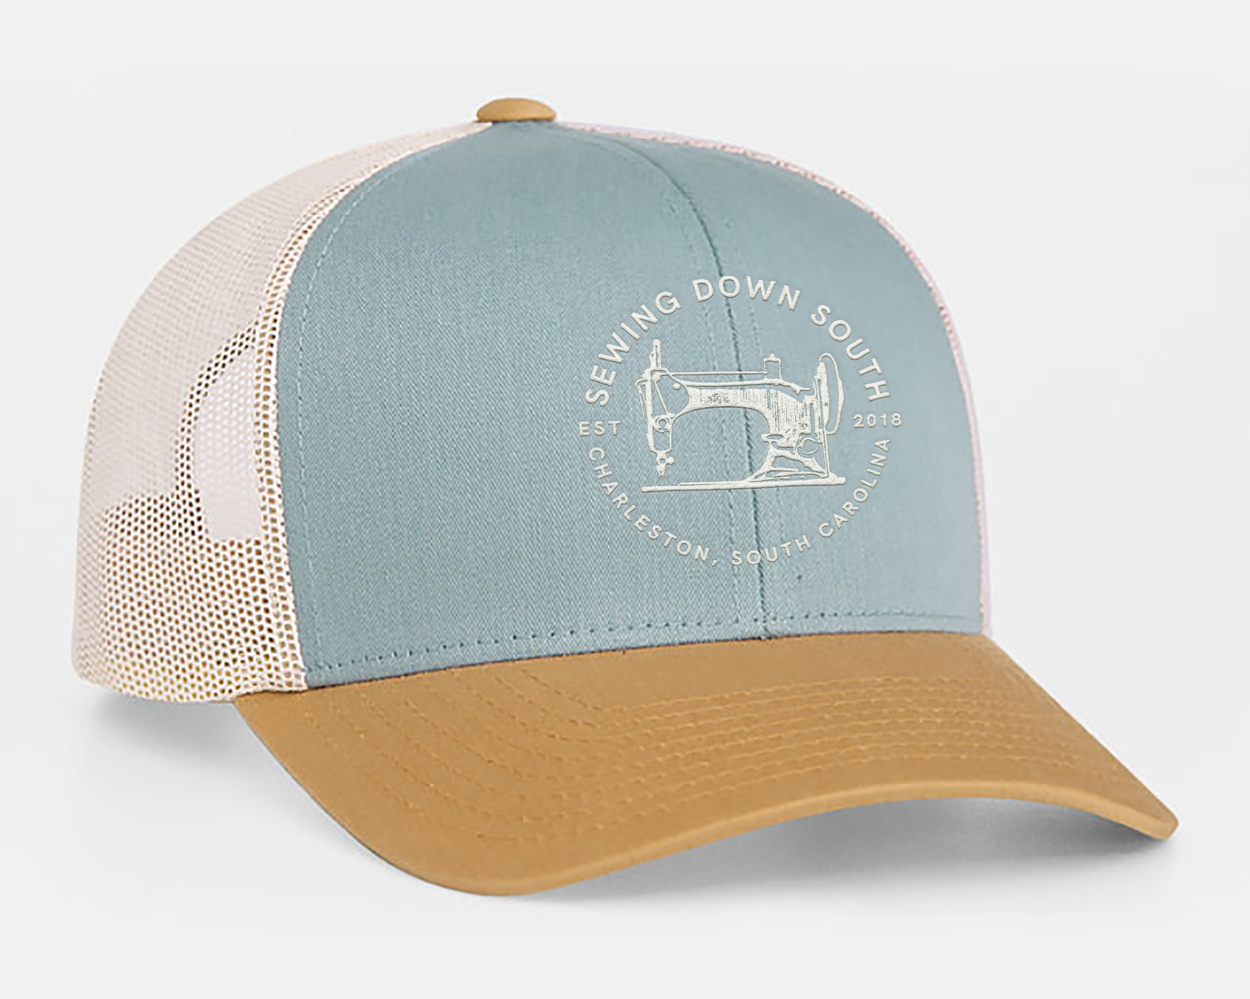 Sewing Down South Logo Hat